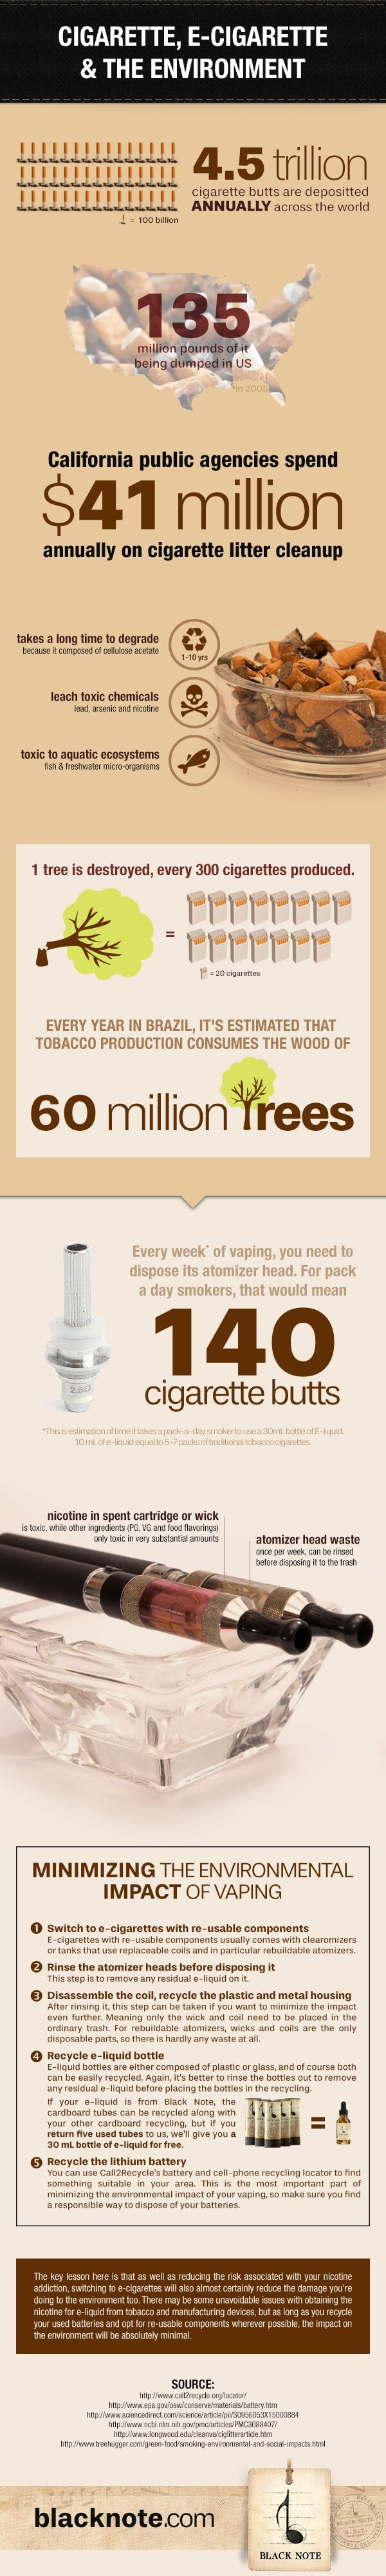 Cigarettes Vs Vaping and E-Cigarettes: Making an Environment-Friendly Choice - Infographic